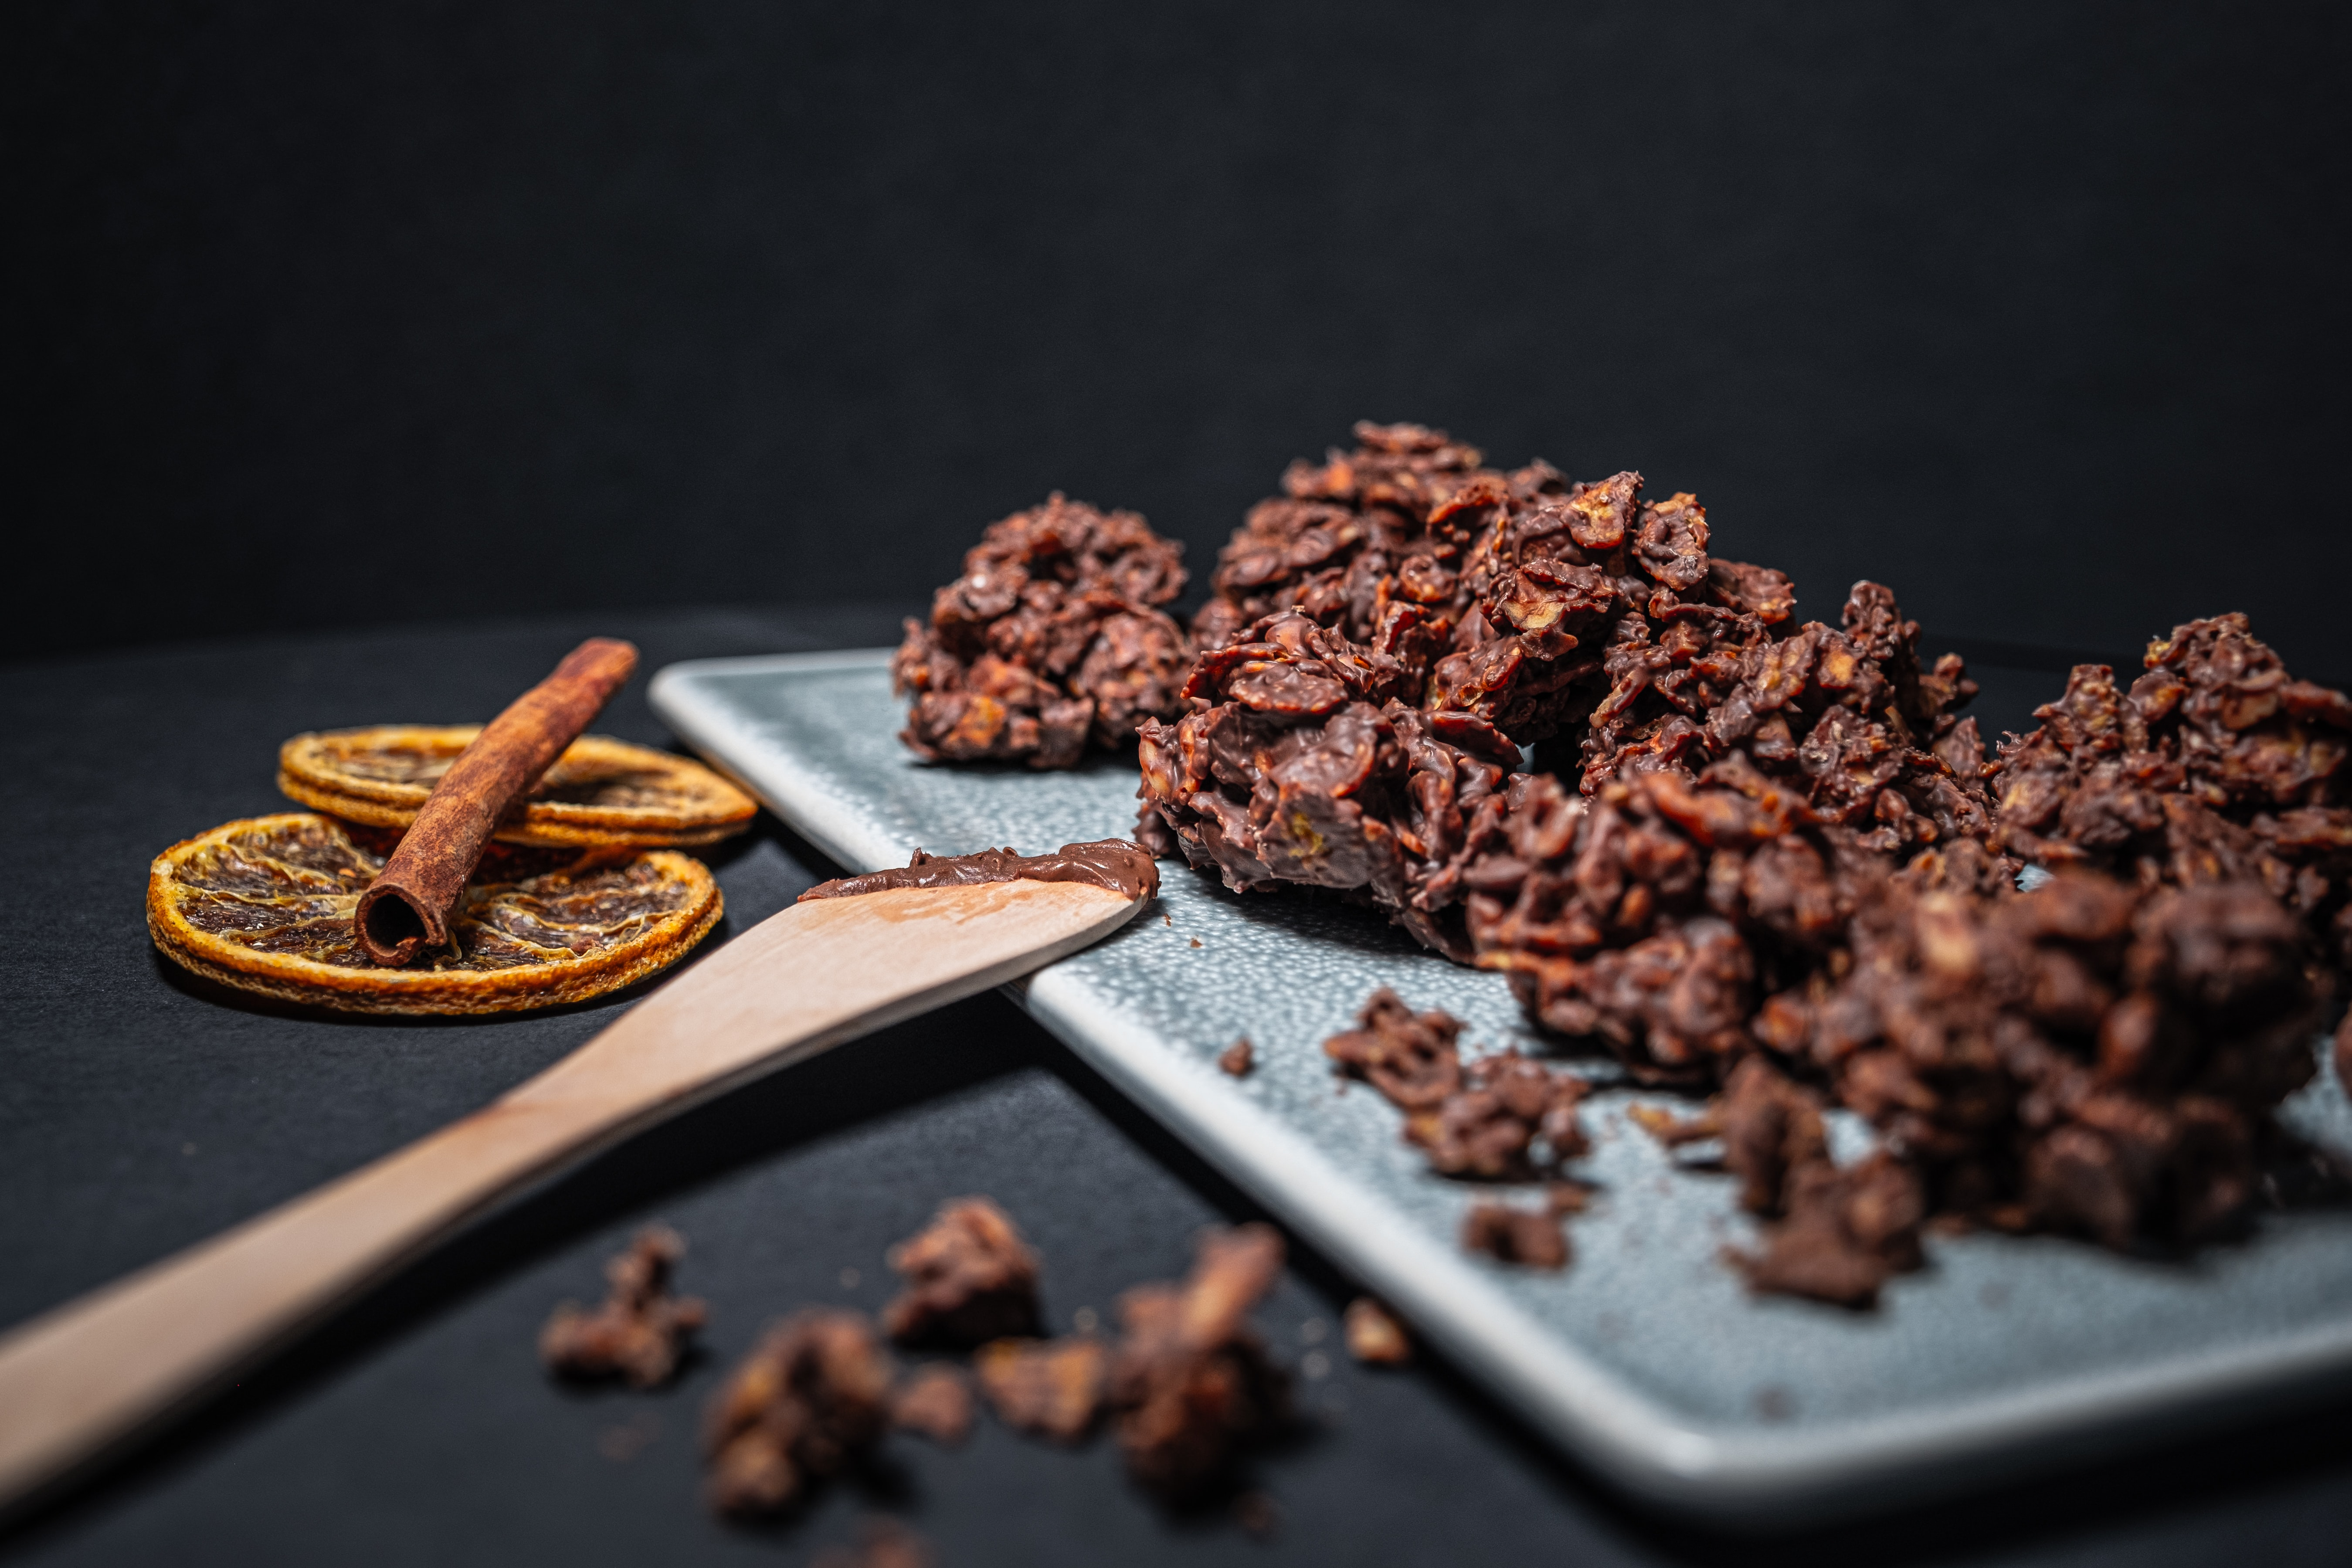 mixed nuts covered in chocolate as a healthy halloween candy alternative